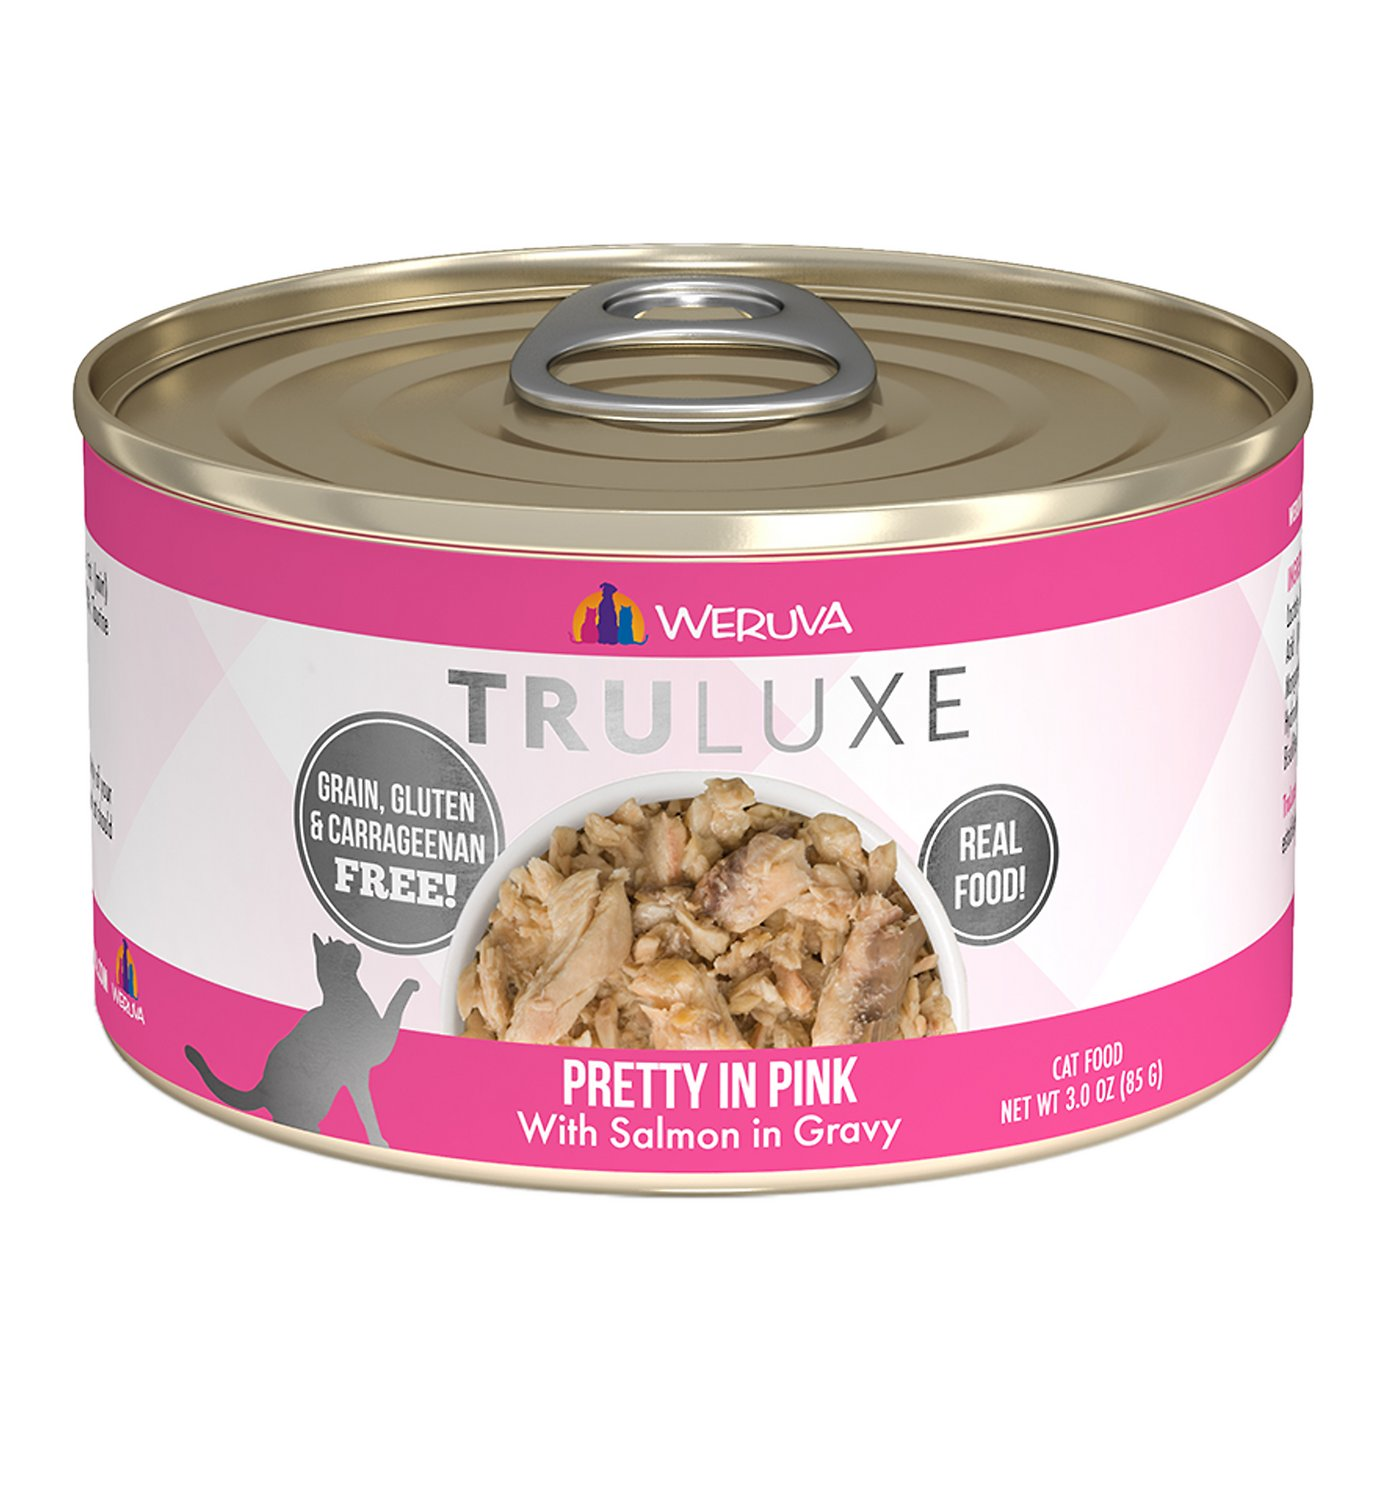 Weruva Cat Truluxe Pretty In Pink with Salmon in Gravy Grain-Free Wet Cat Food, 3-oz